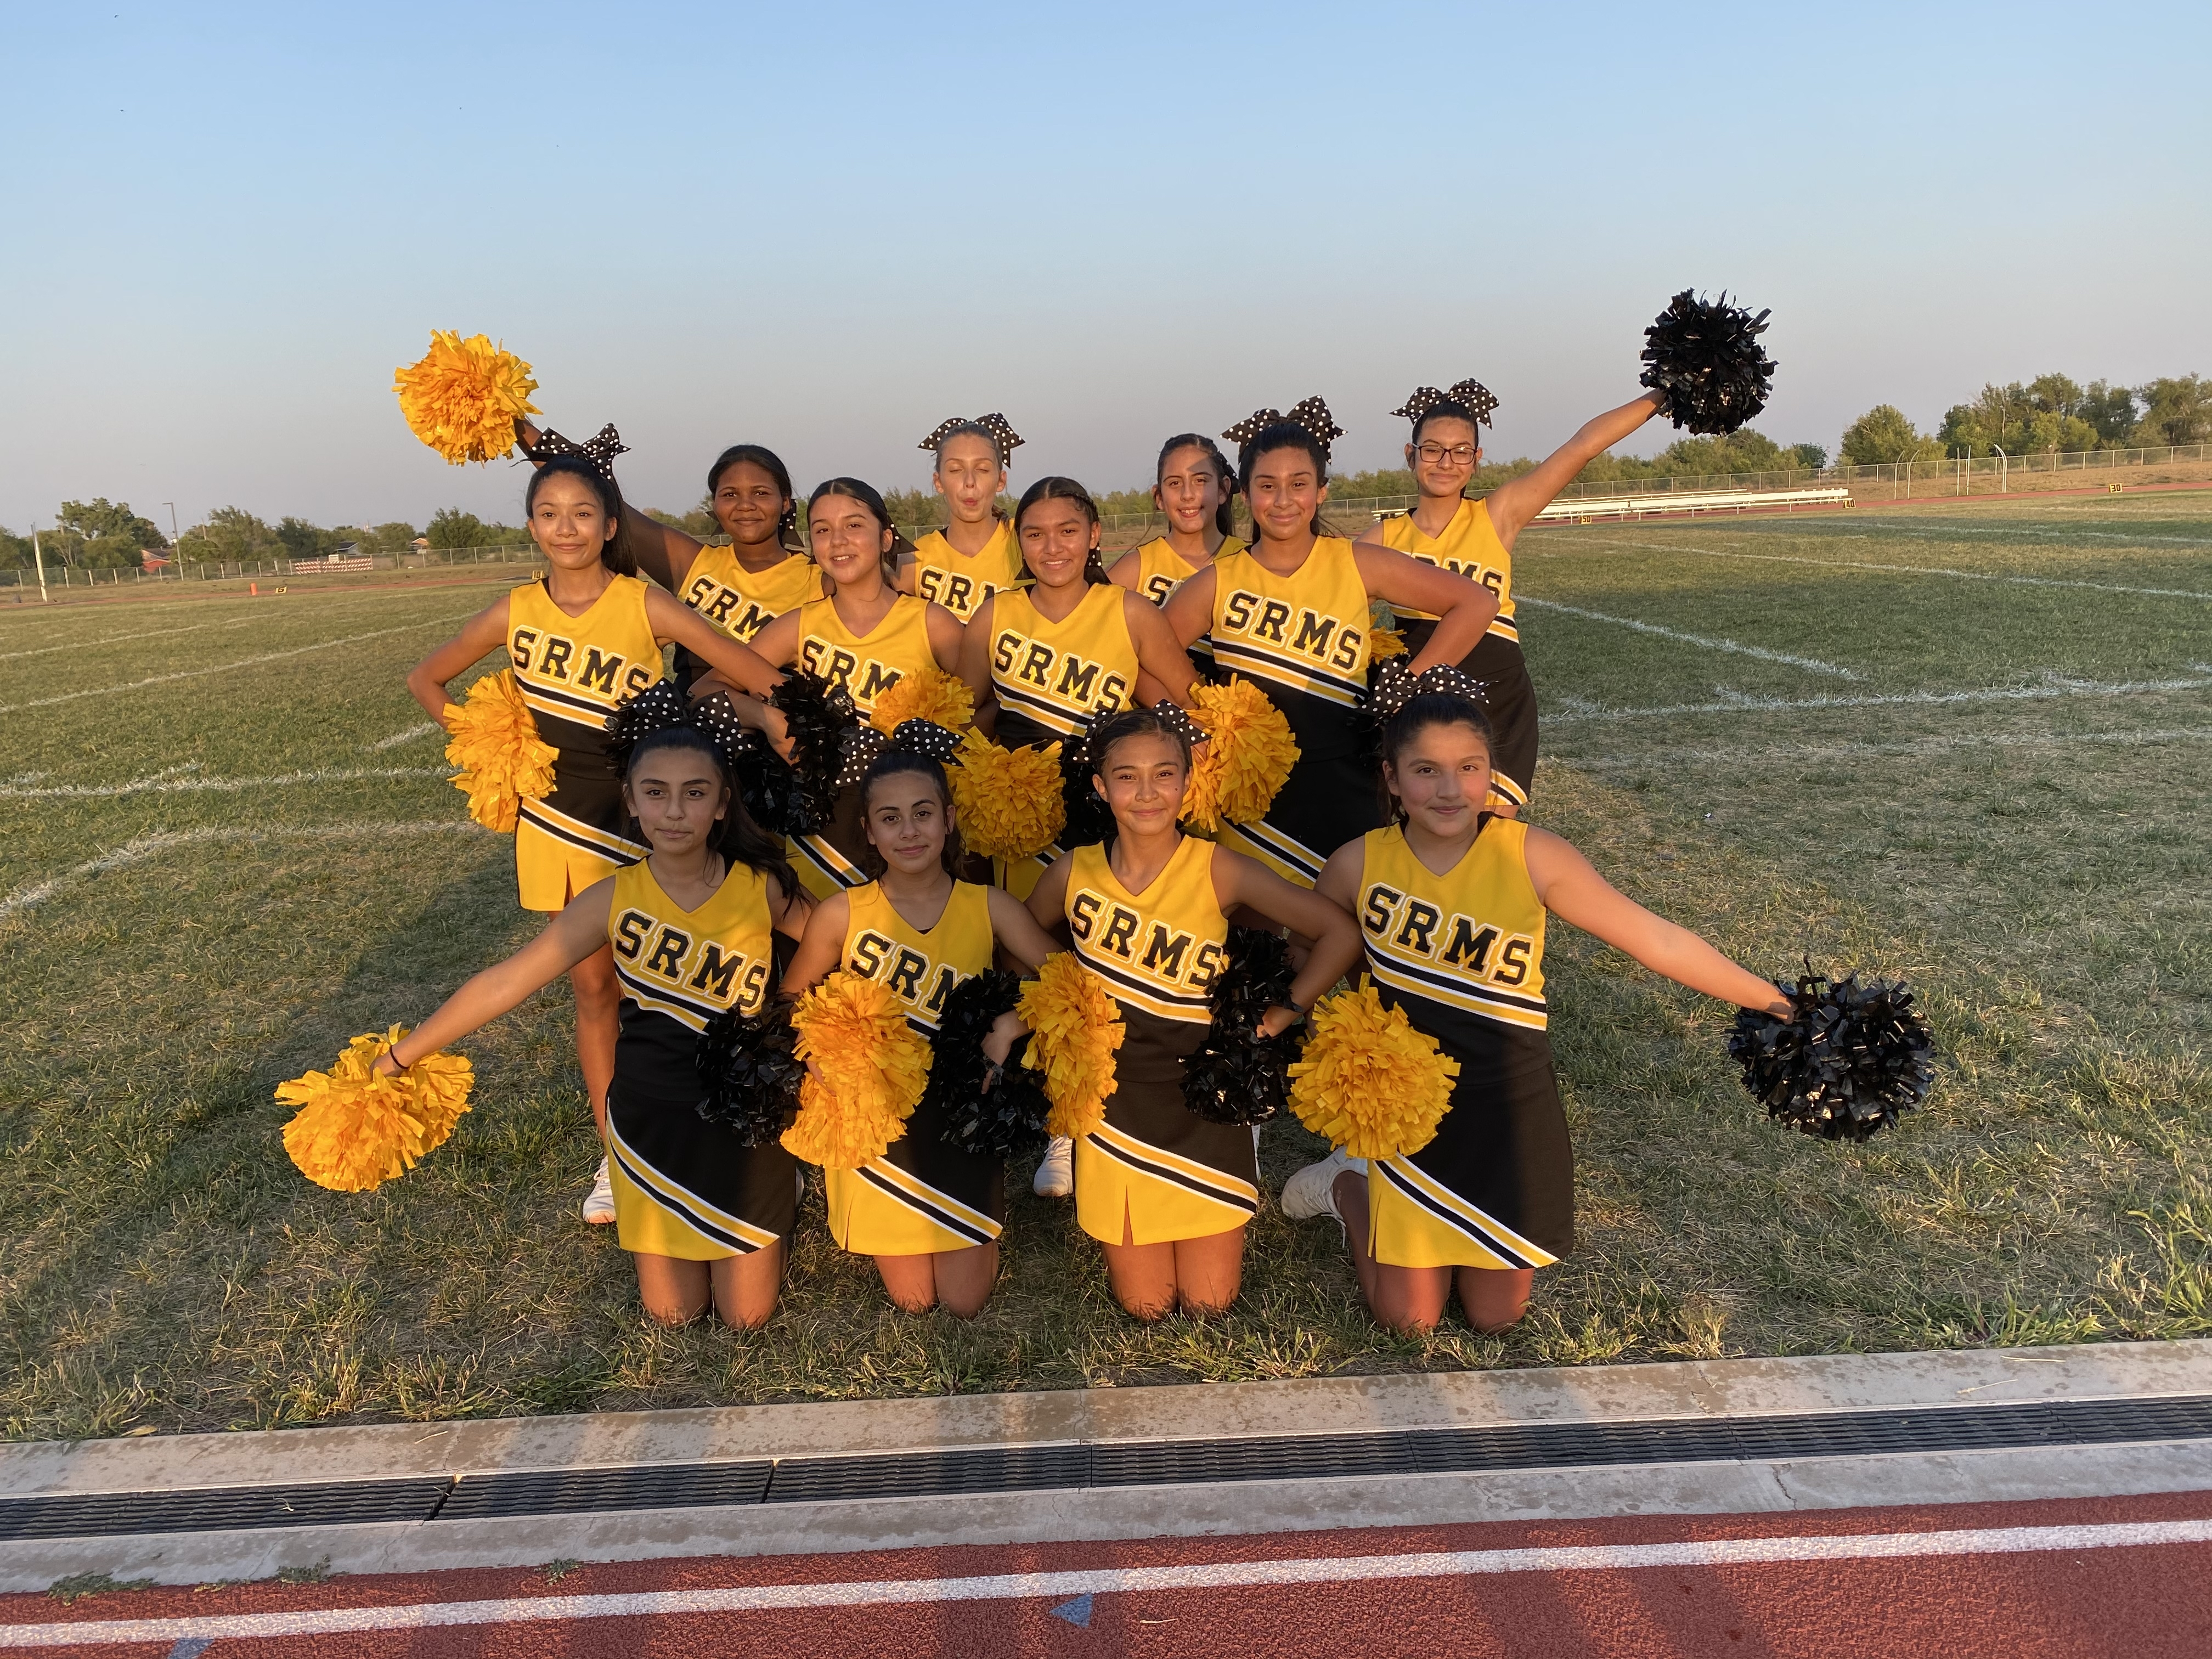 SRMS Cheer rocking their new uniforms!! 💛🖤